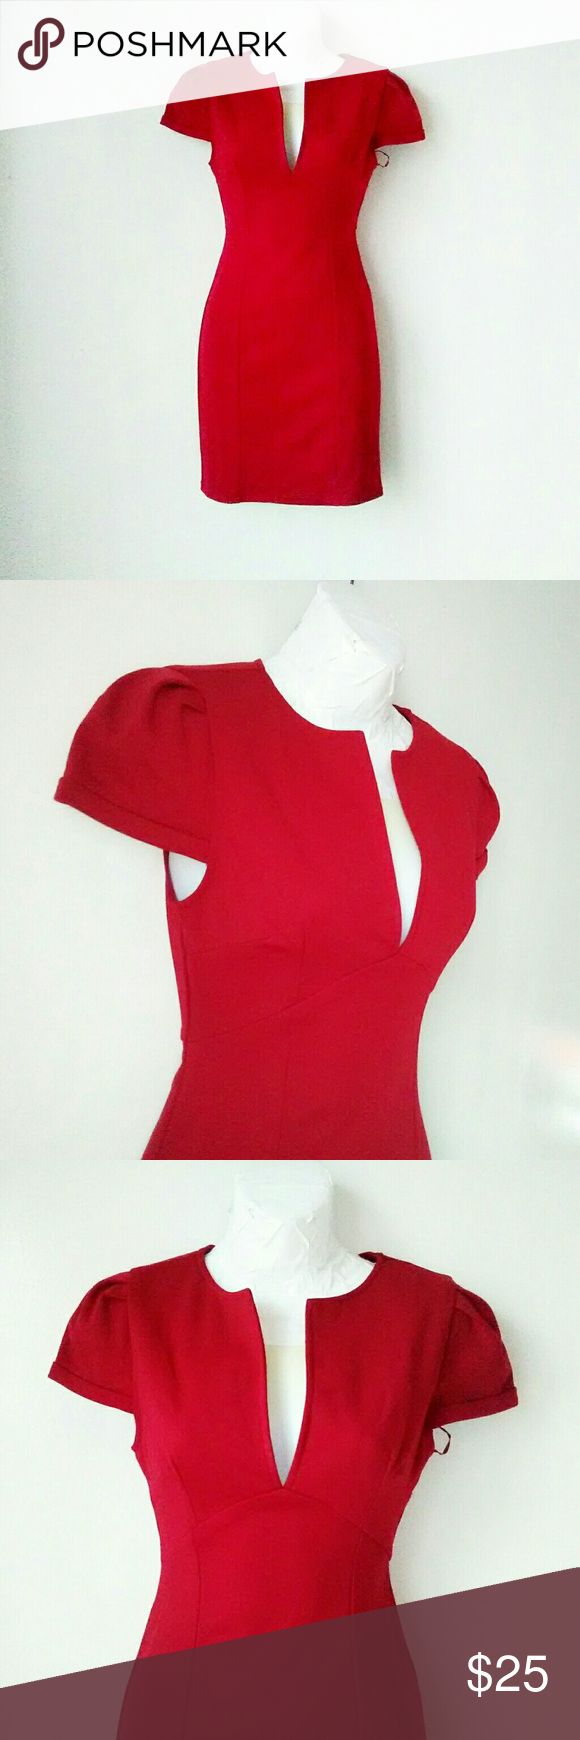 Tobi red body con dress red bodies body con and short sleeves